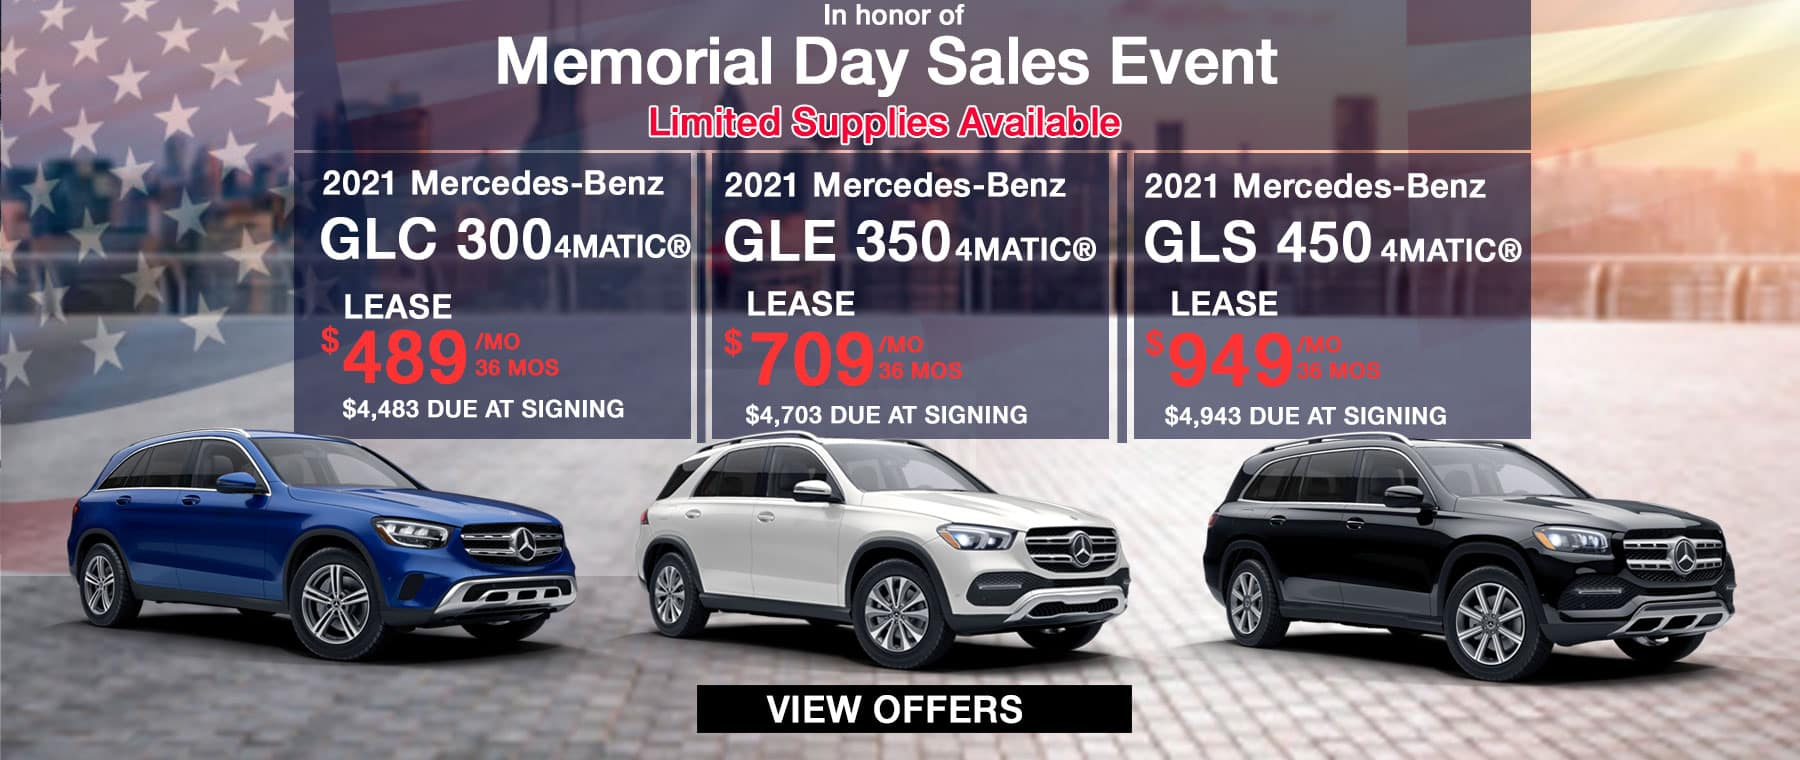 May-Mercedes-Benz-Cherry-Hill-3